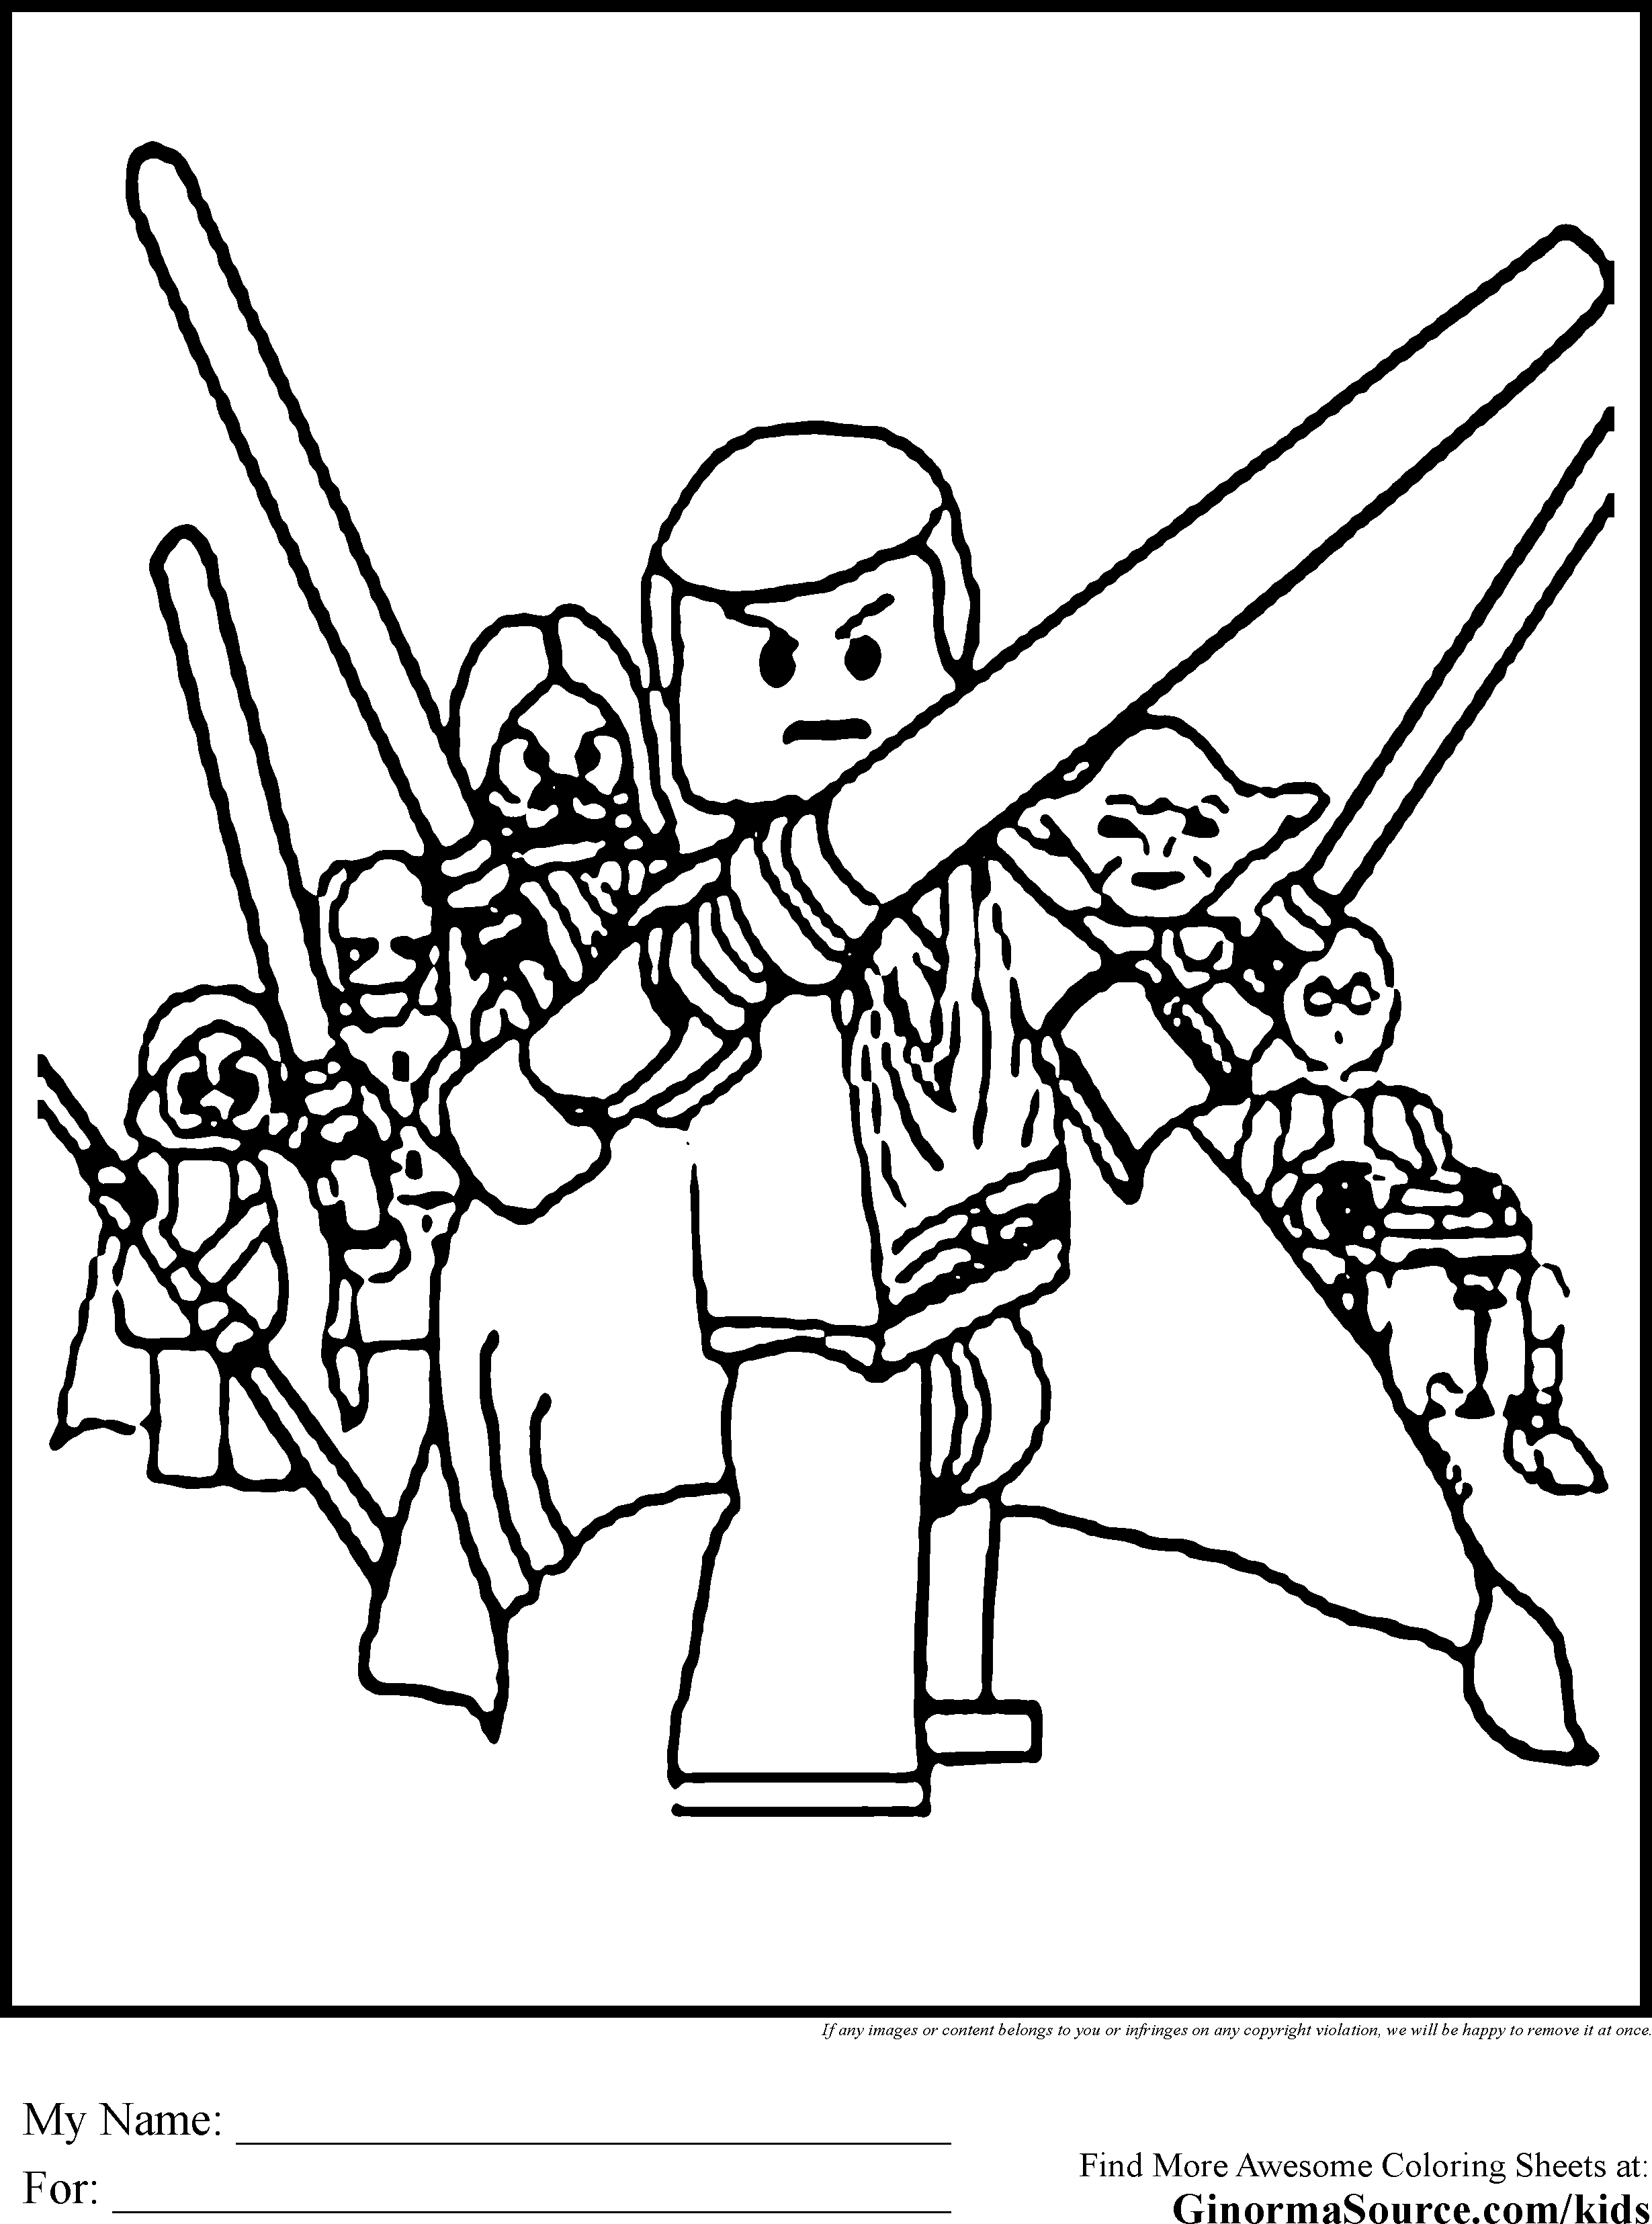 coloring pages Star Wars Coloring Pages GINORMAsource Kids